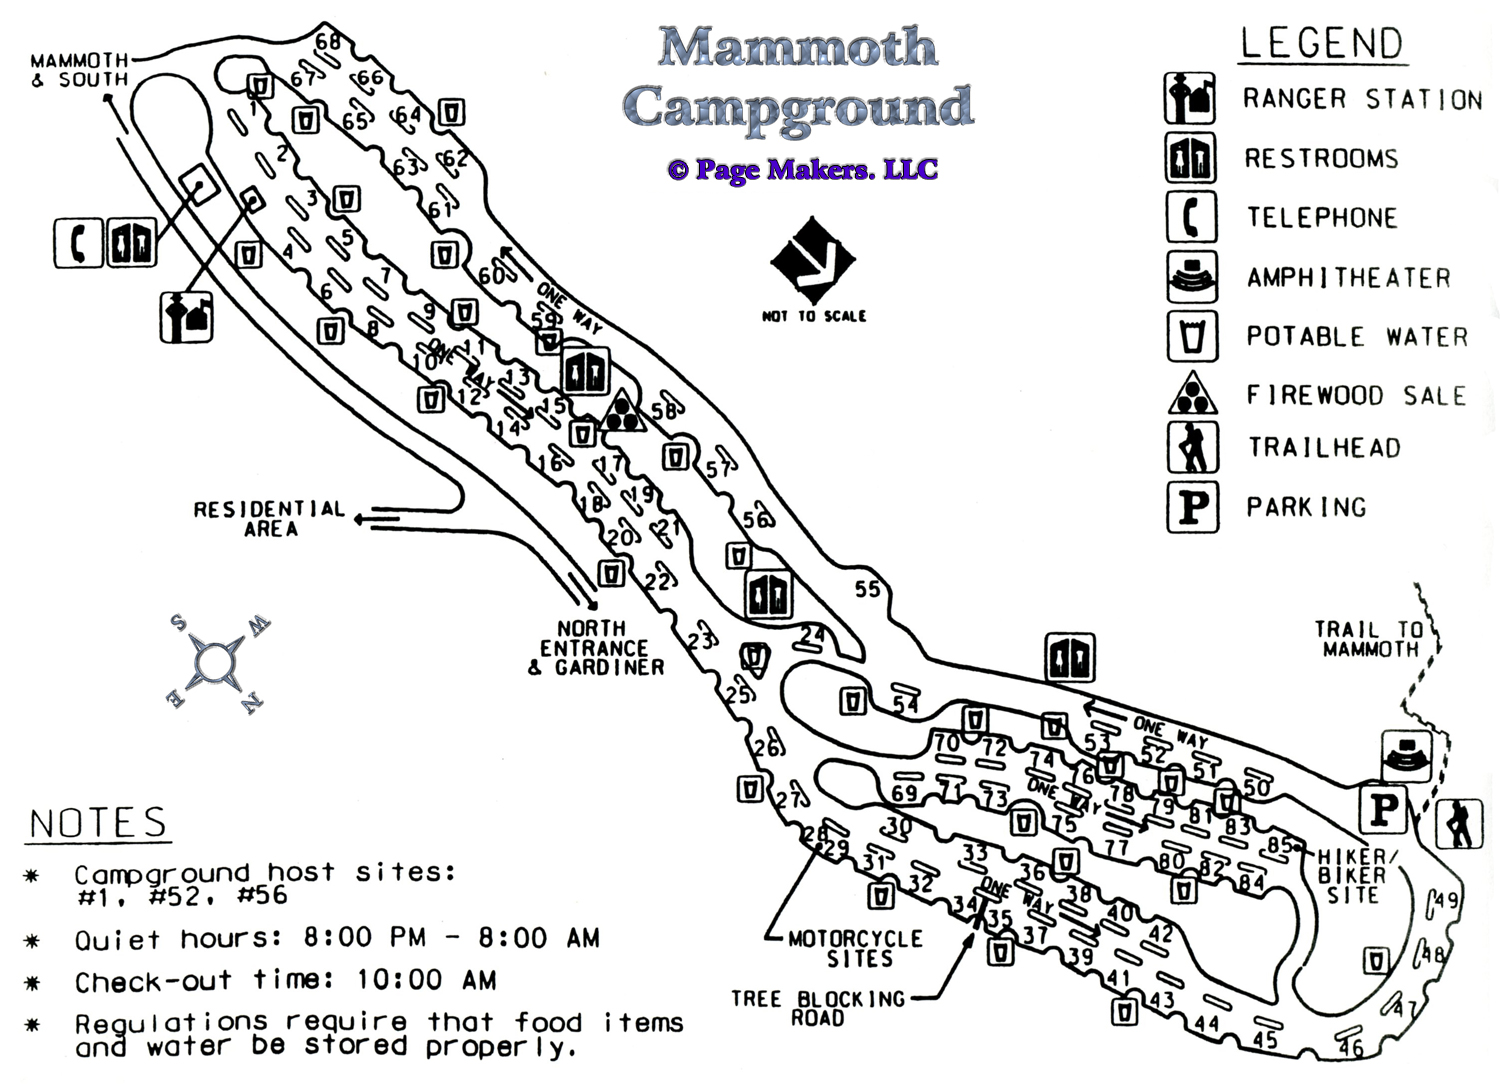 Mammoth Campground Map, Pictures and Video Yellowstone ... on mount snow lodging map, vail lodging map, key west lodging map, lake tahoe lodging map, keystone lodging map, grand canyon village lodging map, alta lodging map, beaver creek lodging map, snowbird lodging map, lionshead lodging map, moab lodging map, wintergreen lodging map, gatlinburg lodging map, yosemite lodging map, sedona lodging map, phoenix lodging map,